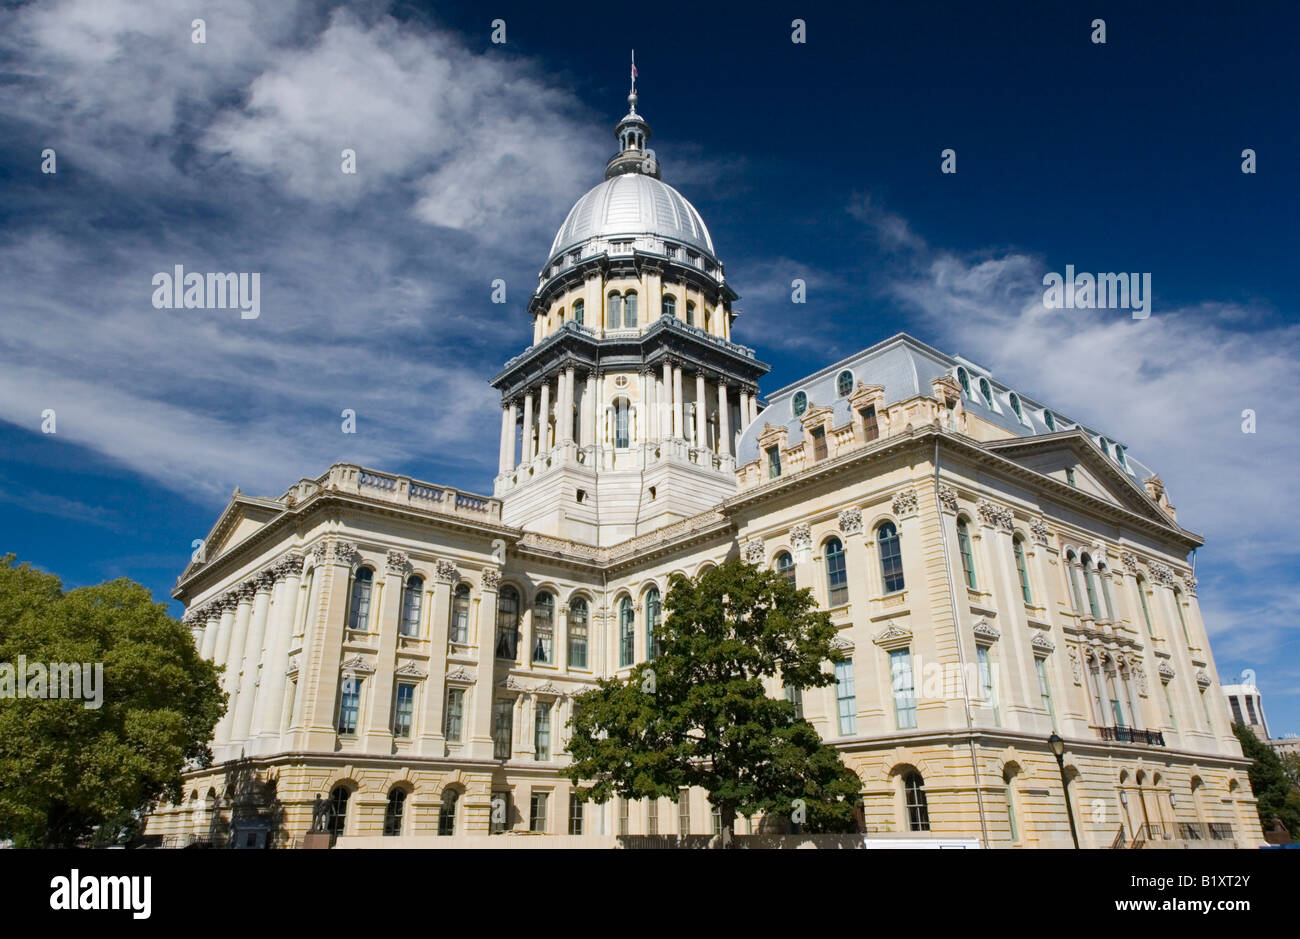 State Capitol of Illinois - Stock Image